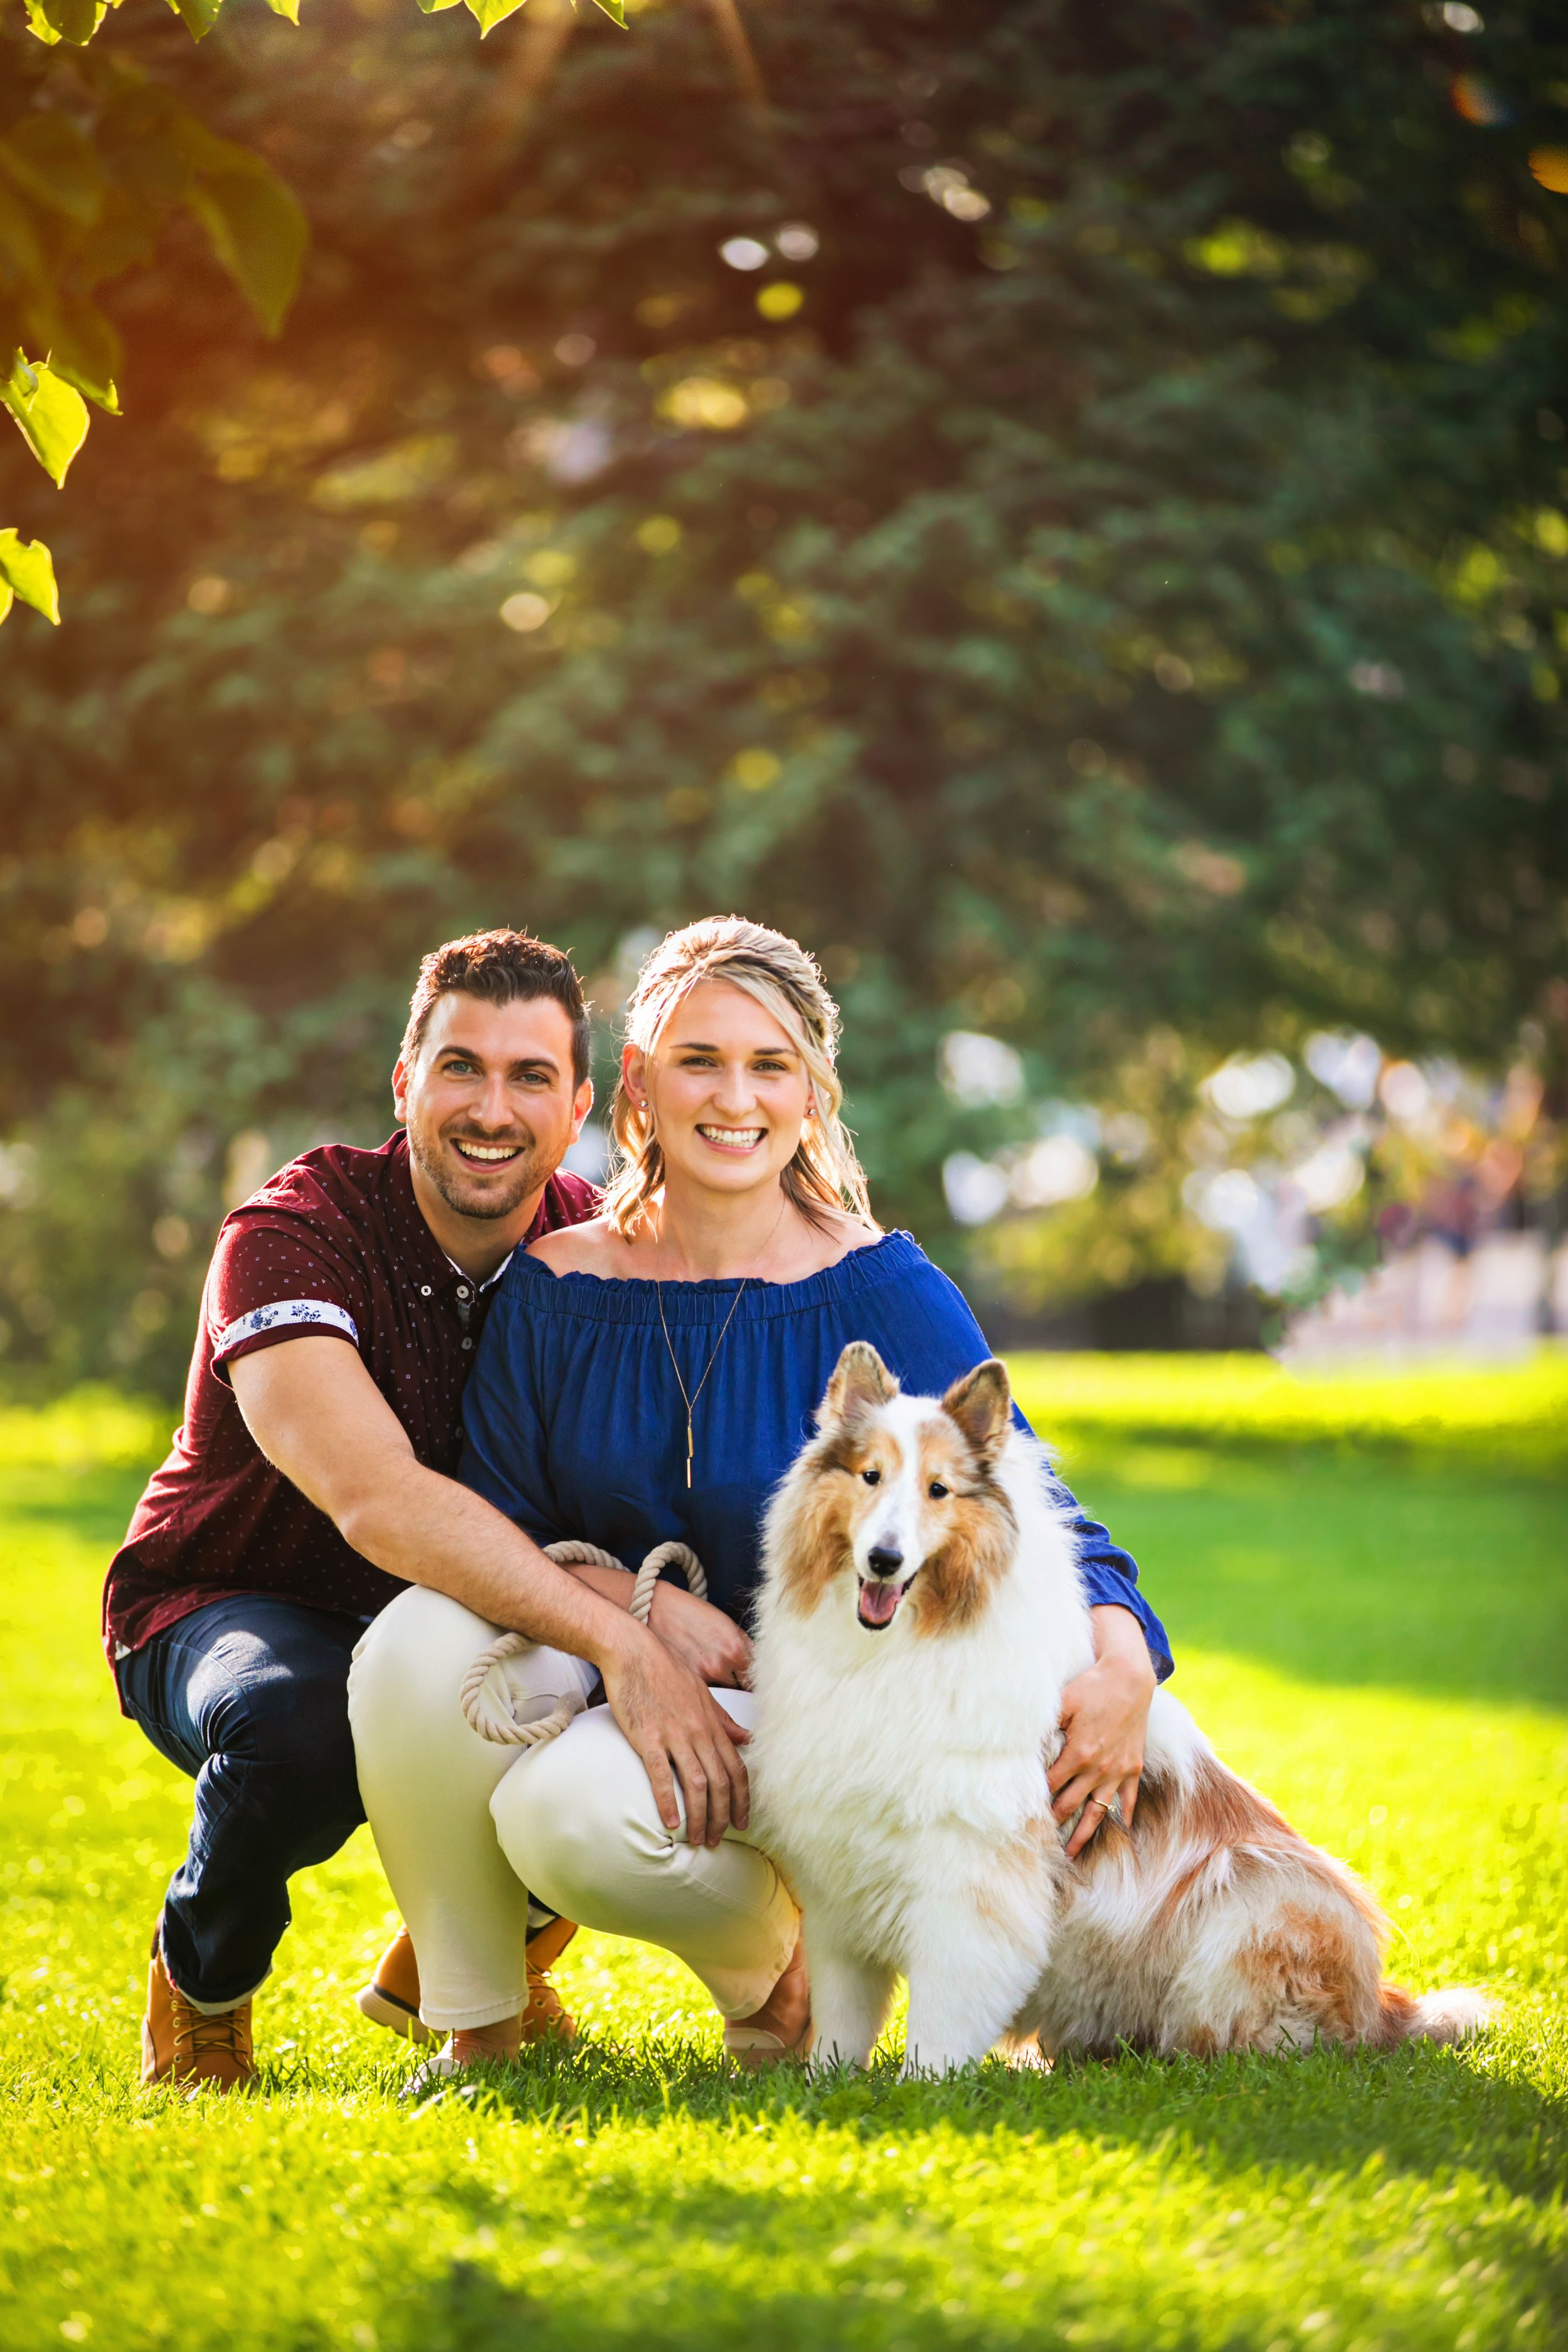 Downtown London Ontario Victoria Park Engagement Photography by Shawn Van Daele